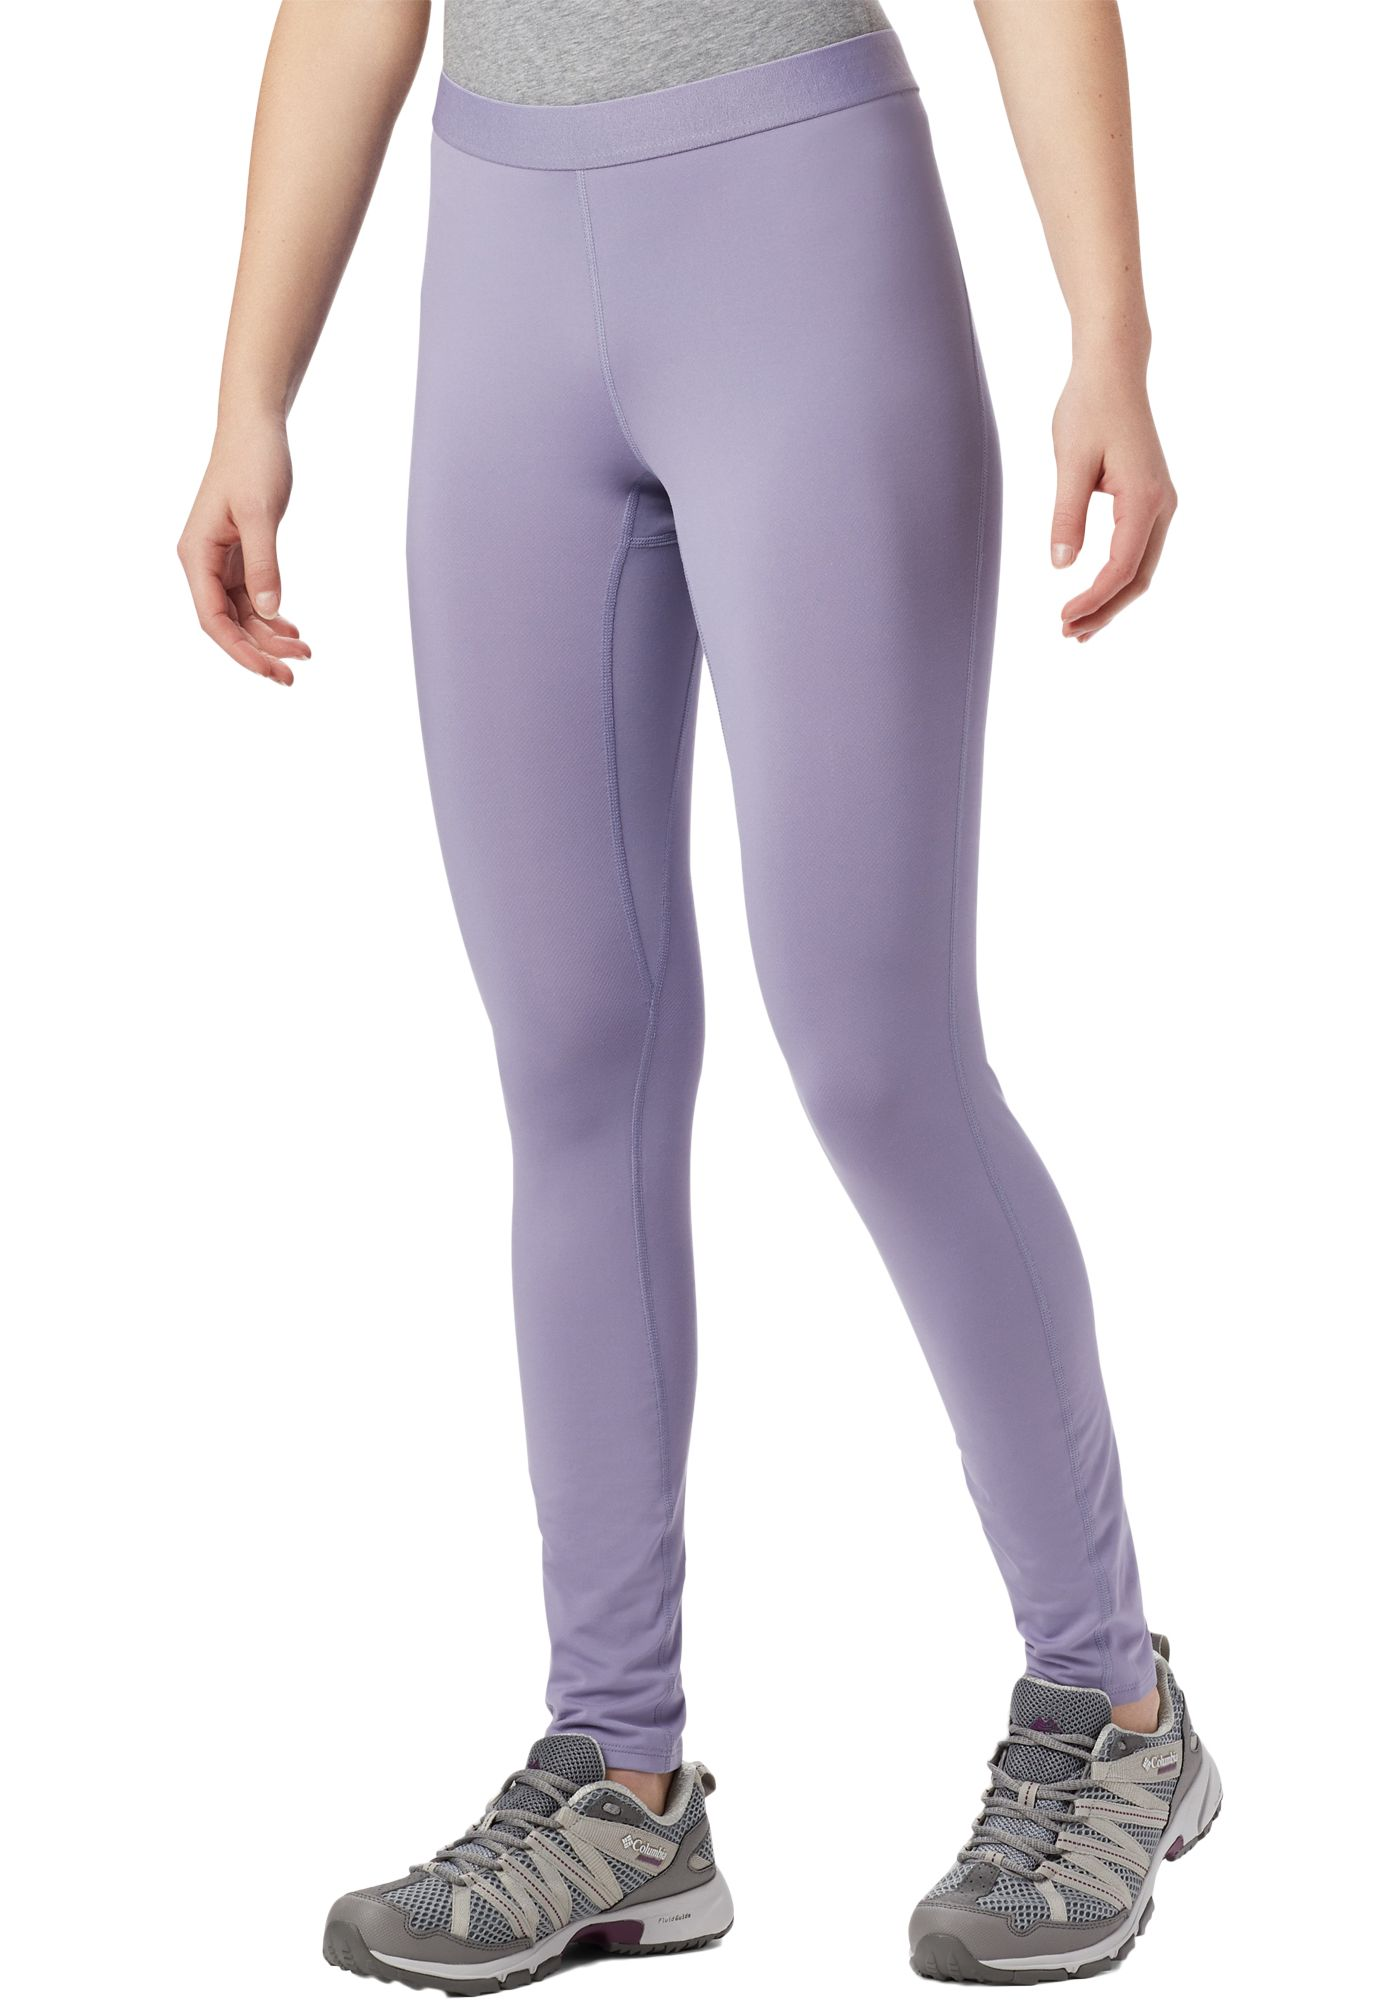 Columbia Women's Midweight Stretch Tights